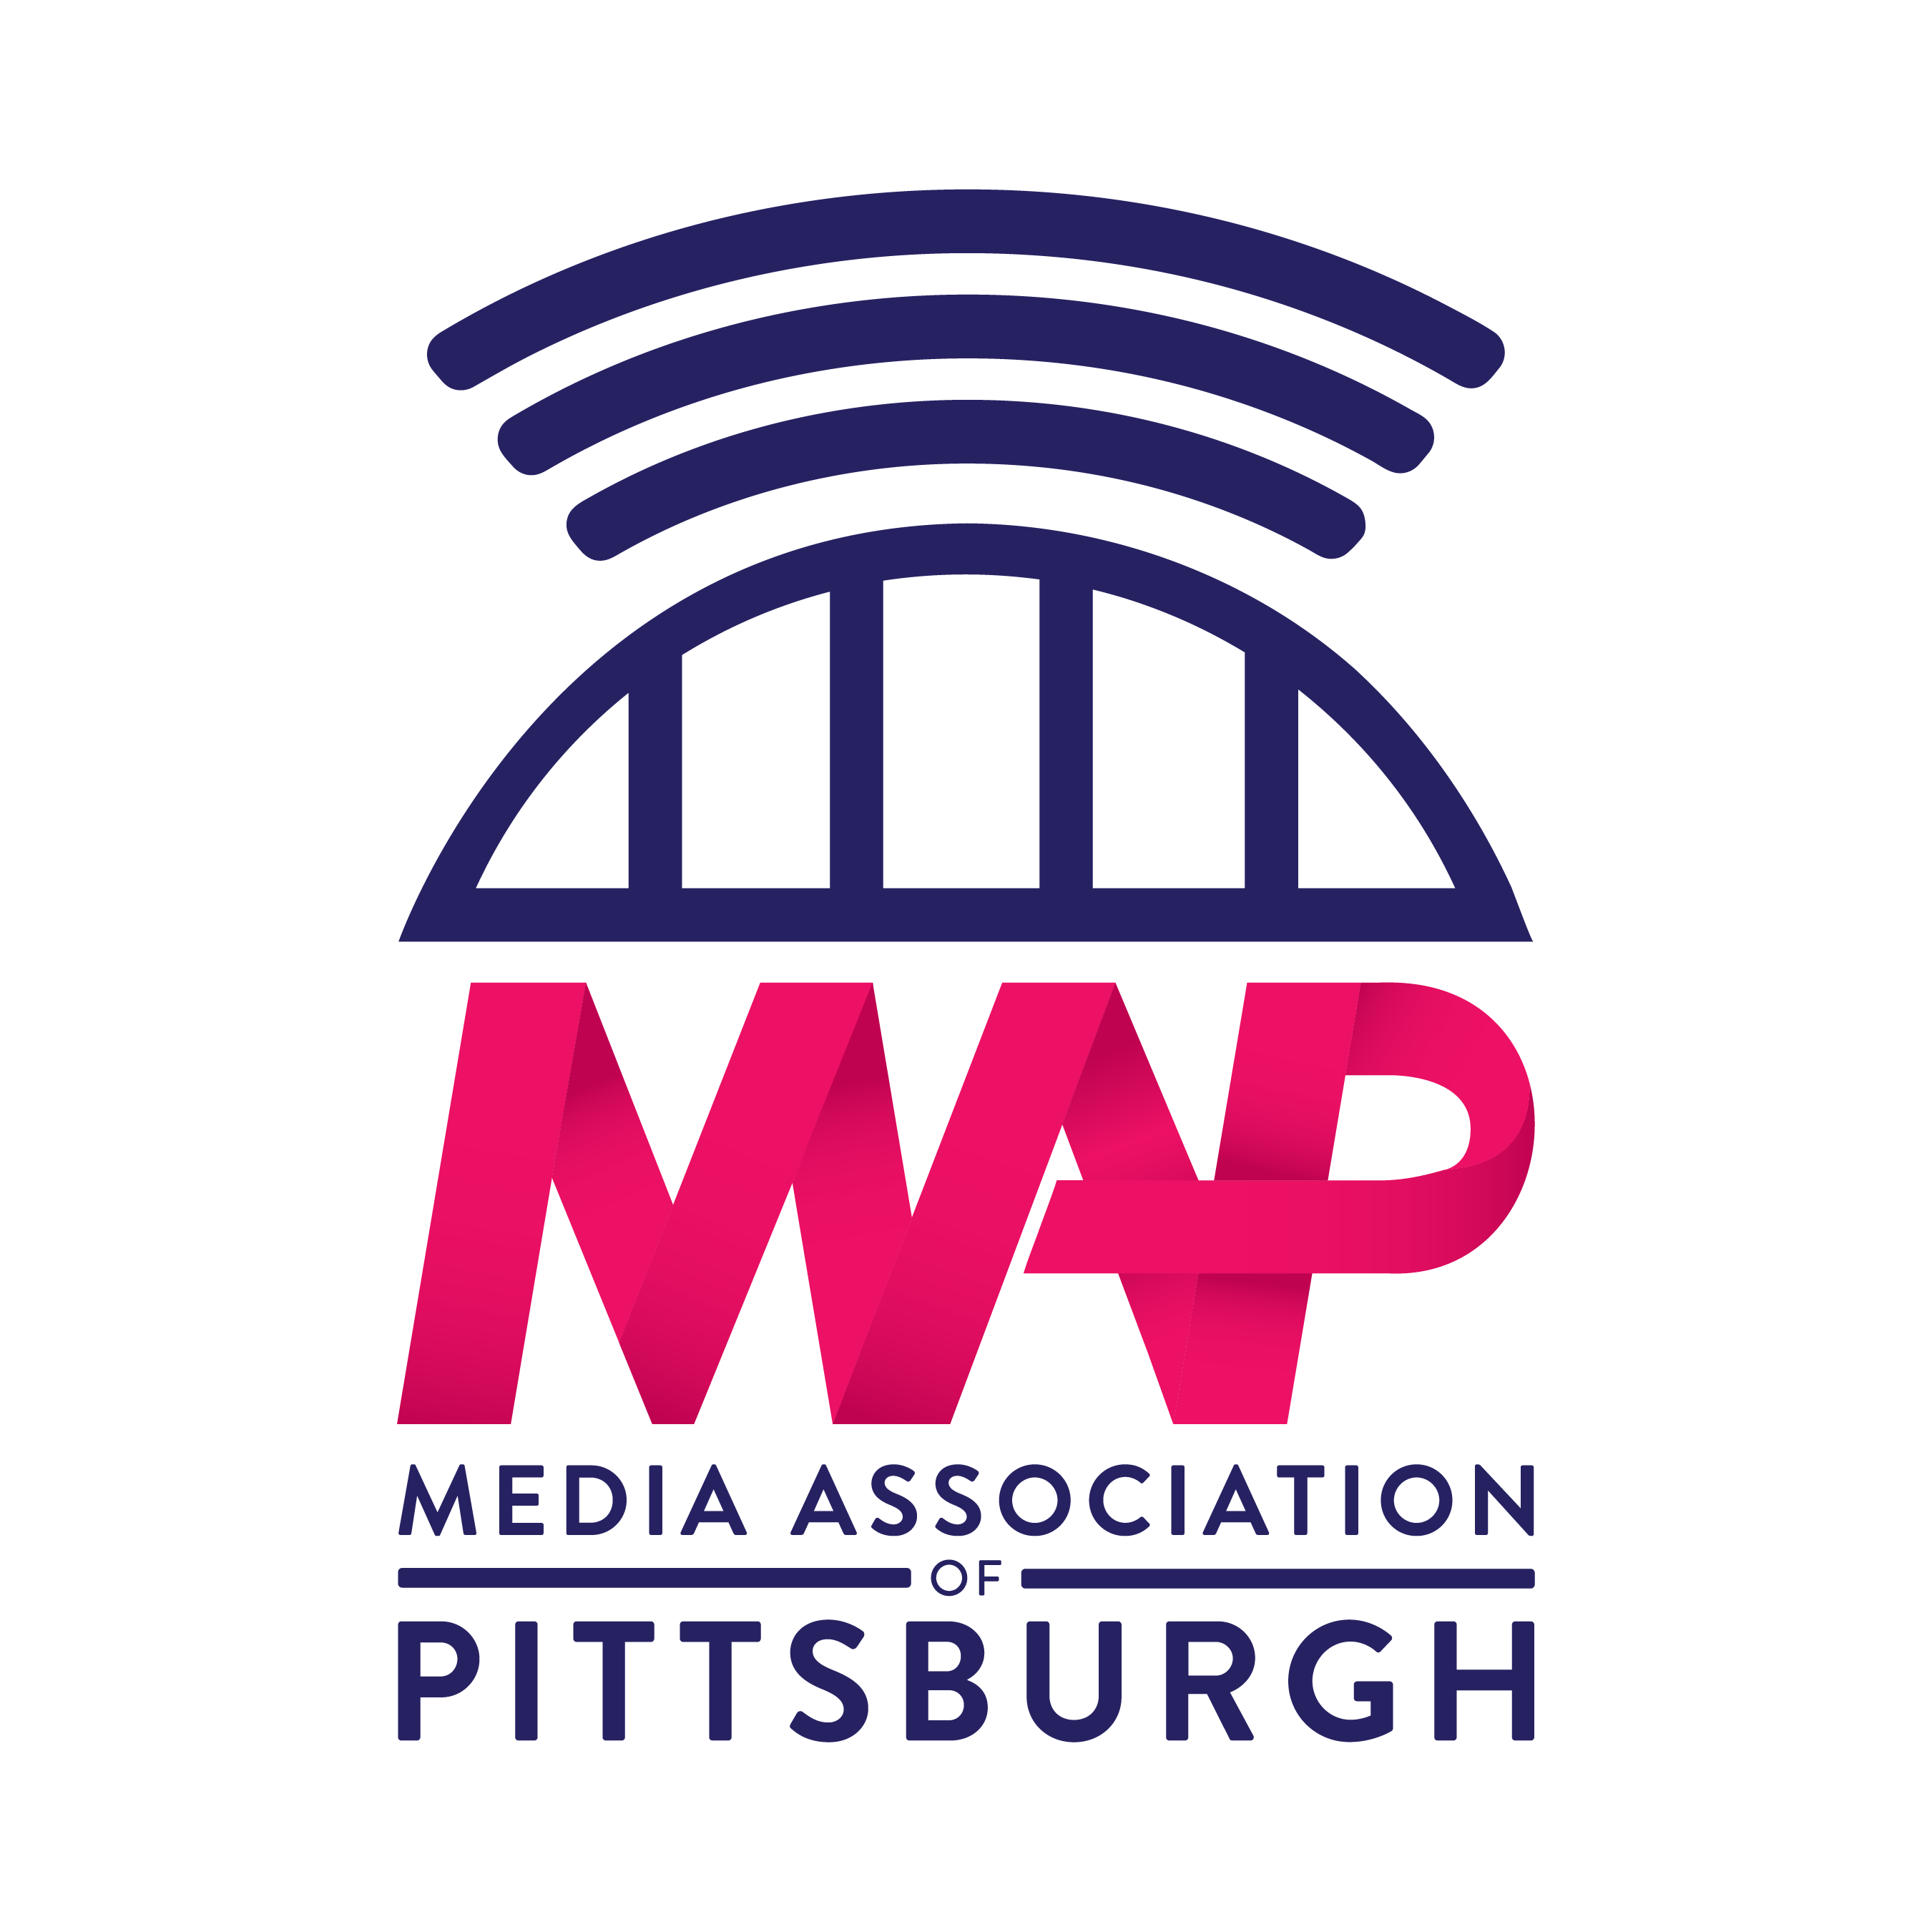 Media Association of Pittsburgh